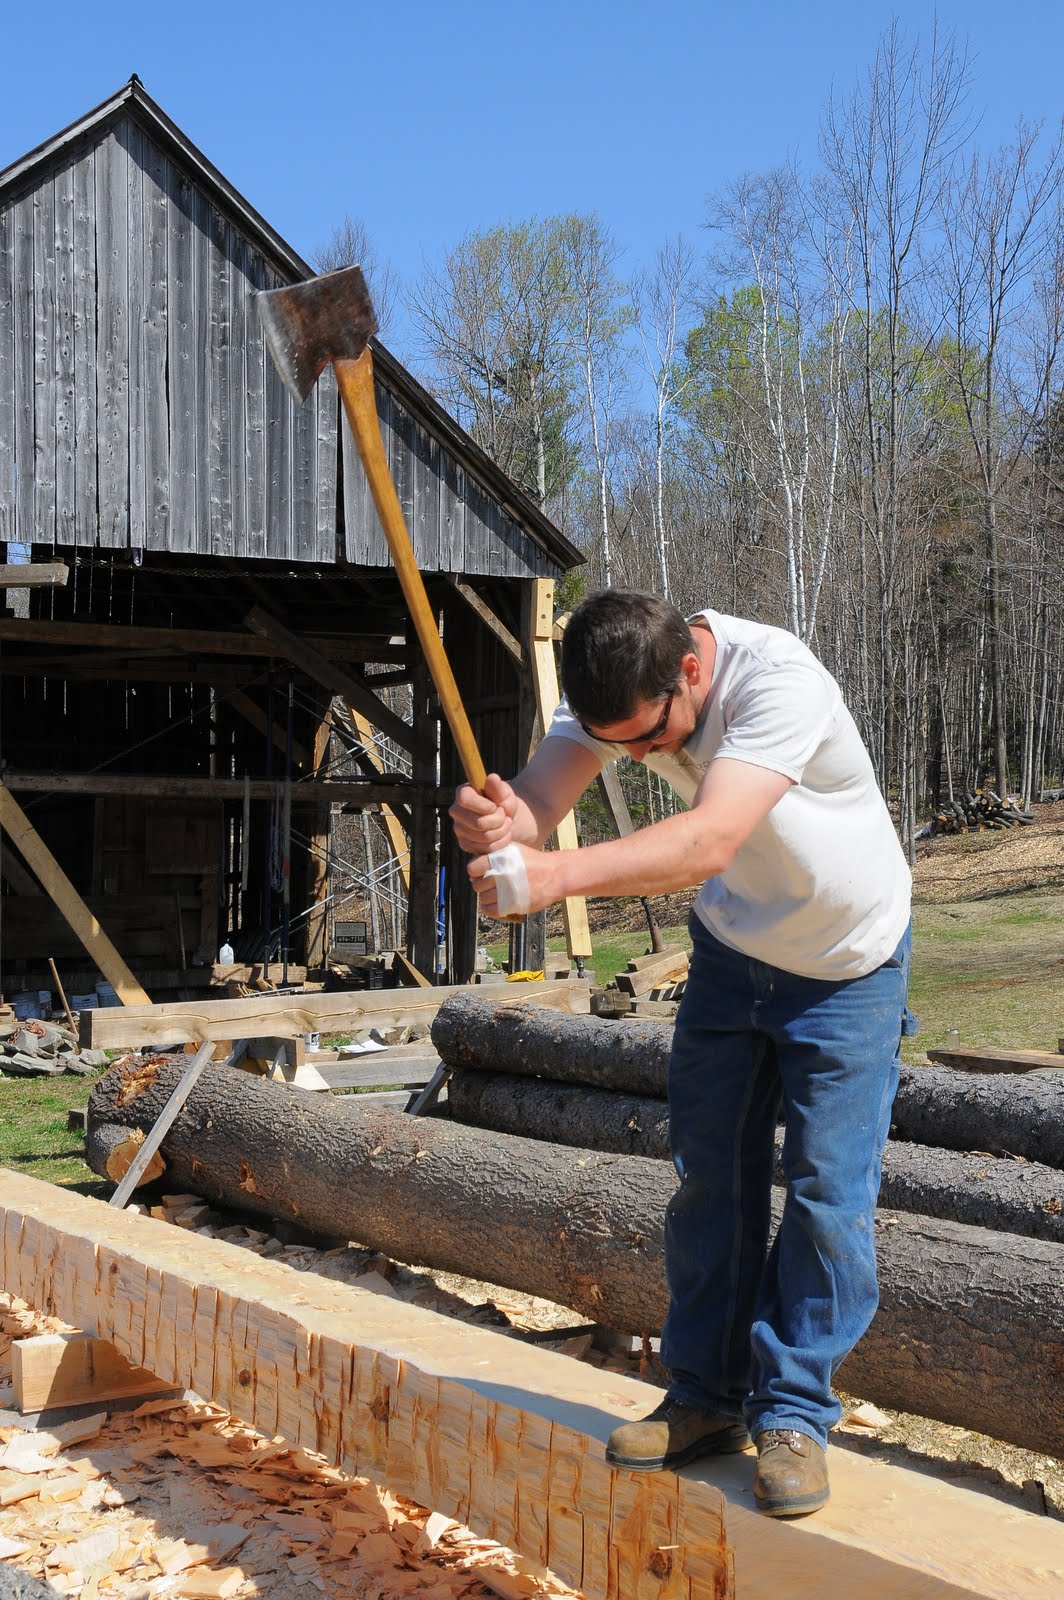 Seth Kelley scores the timber with a felling axe before making a final pass with the broad axe